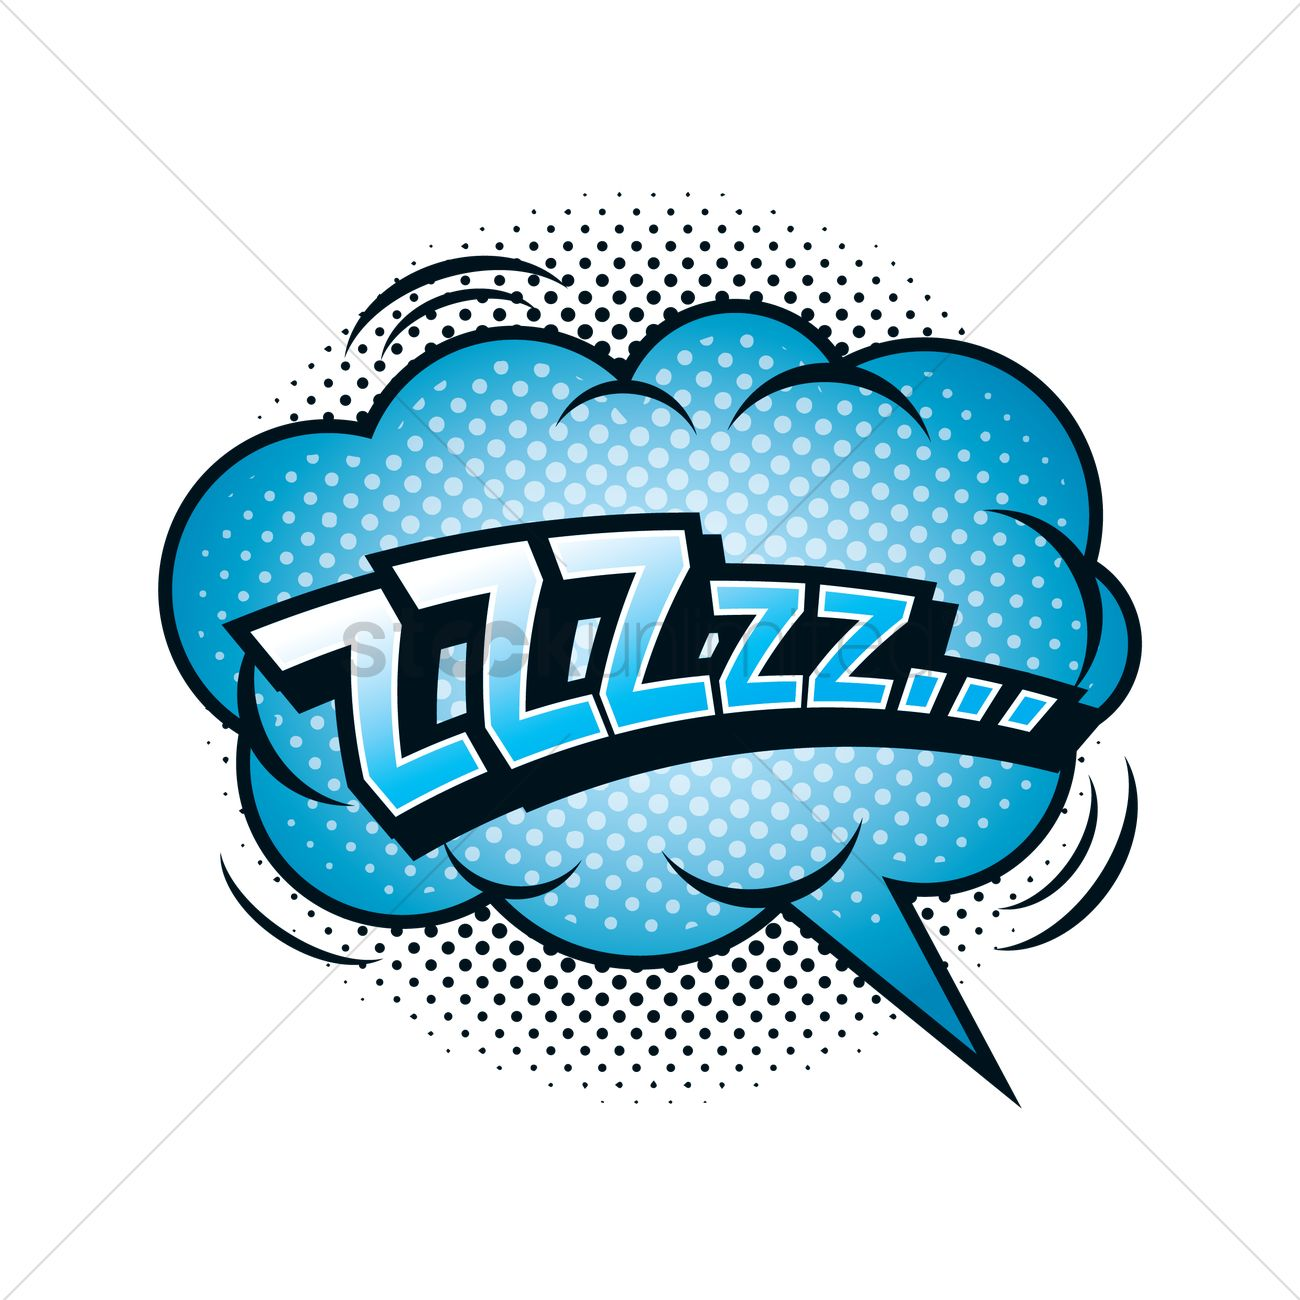 zzz comic speech bubble vector image 1711048 text bubble vector image text chat bubble vector